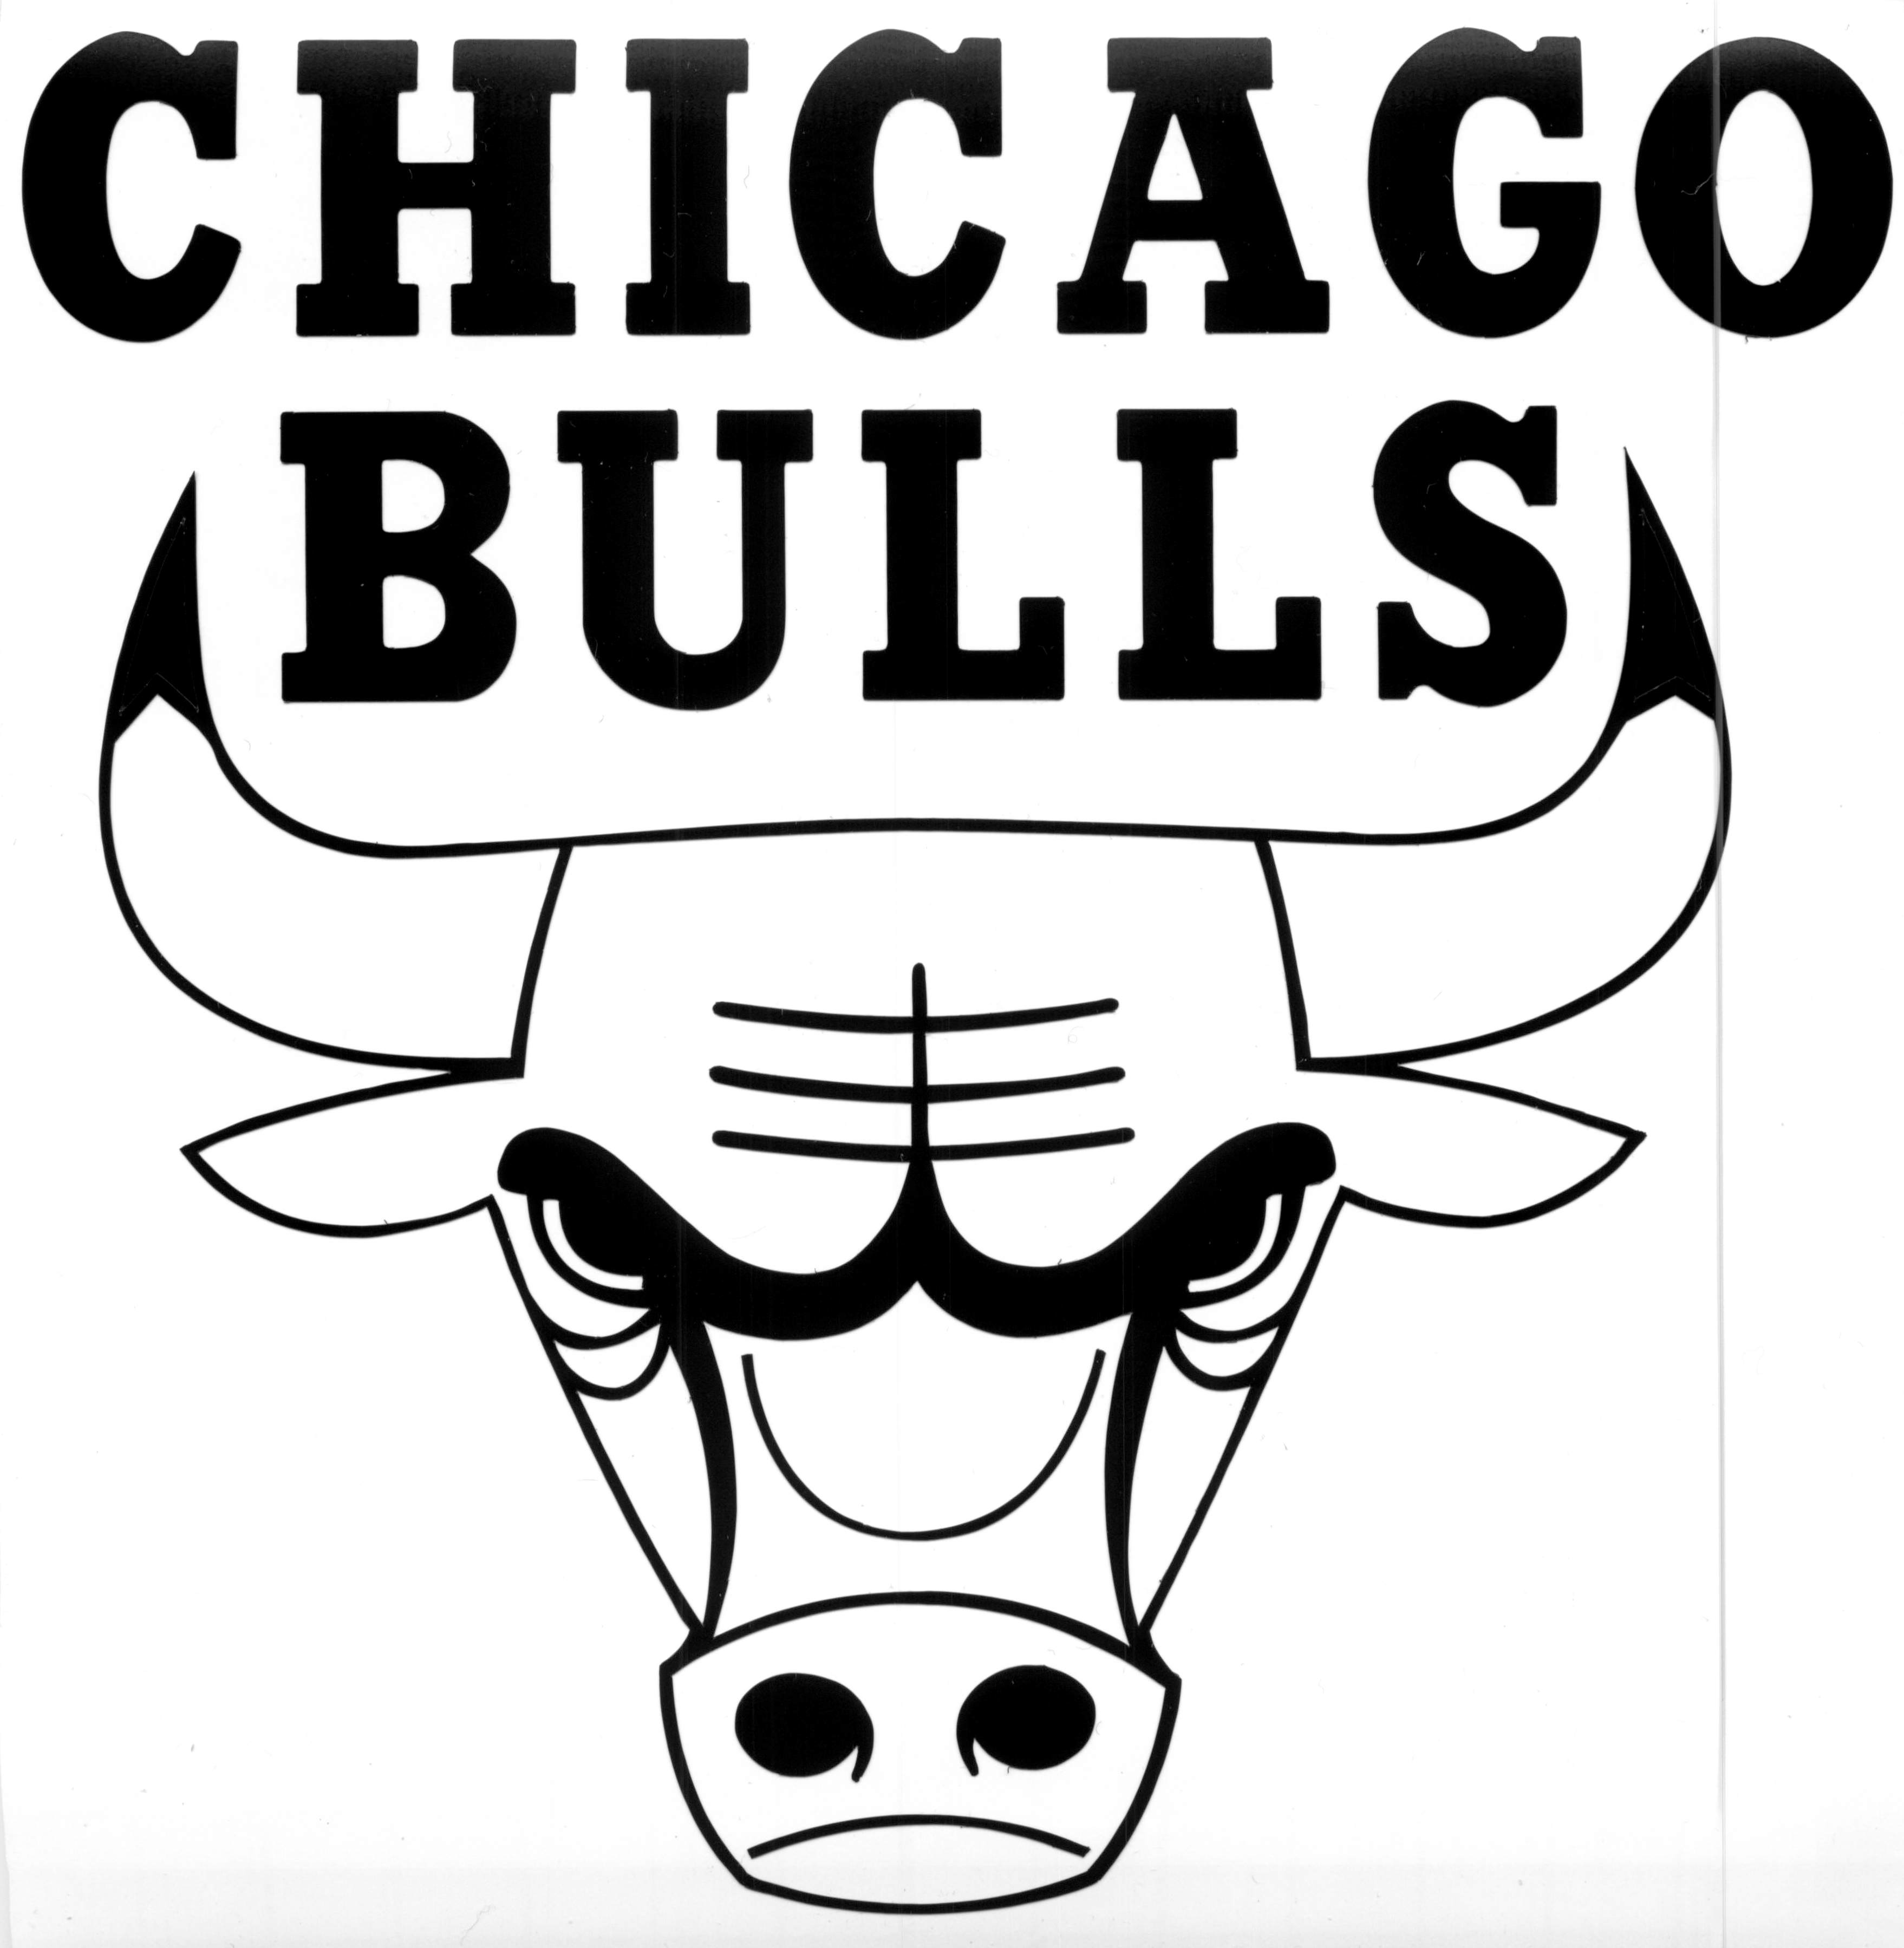 chicago bulls coloring pages basketball to download basketball kids coloring pages coloring chicago bulls pages